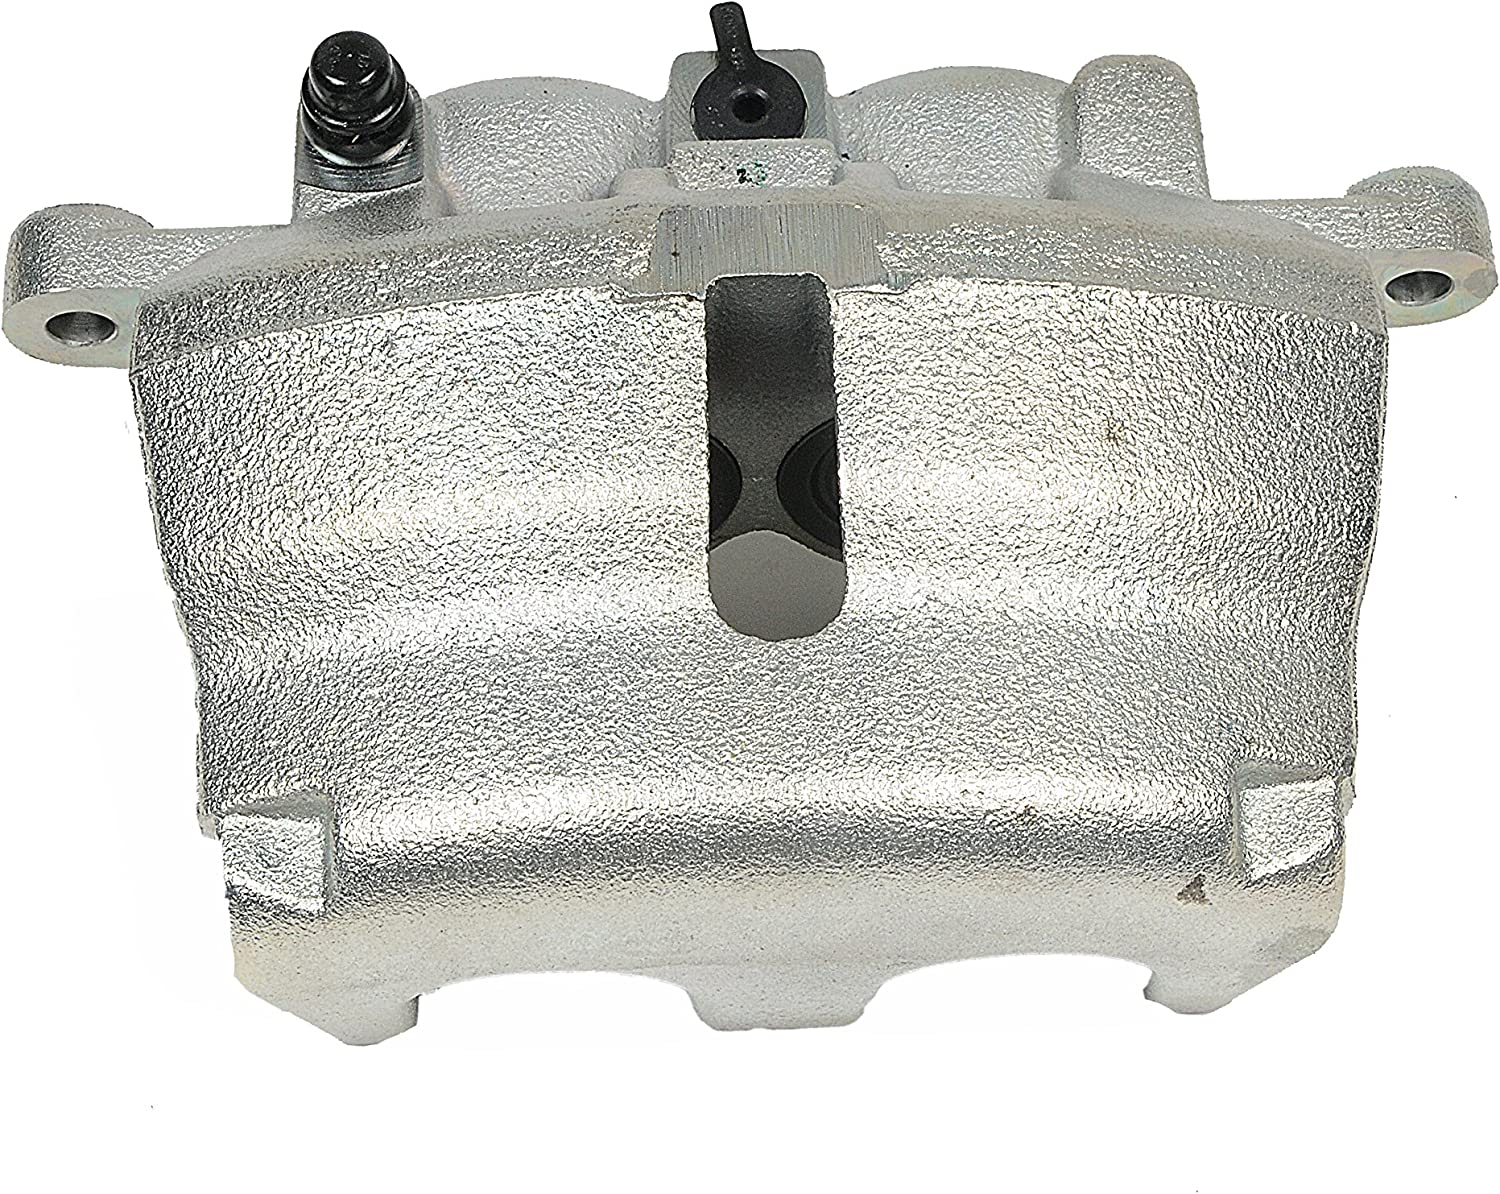 ACDelco 21998526 GM Original Equipment Front Disc Brake Caliper Assembly without Brake Pads or Bracket